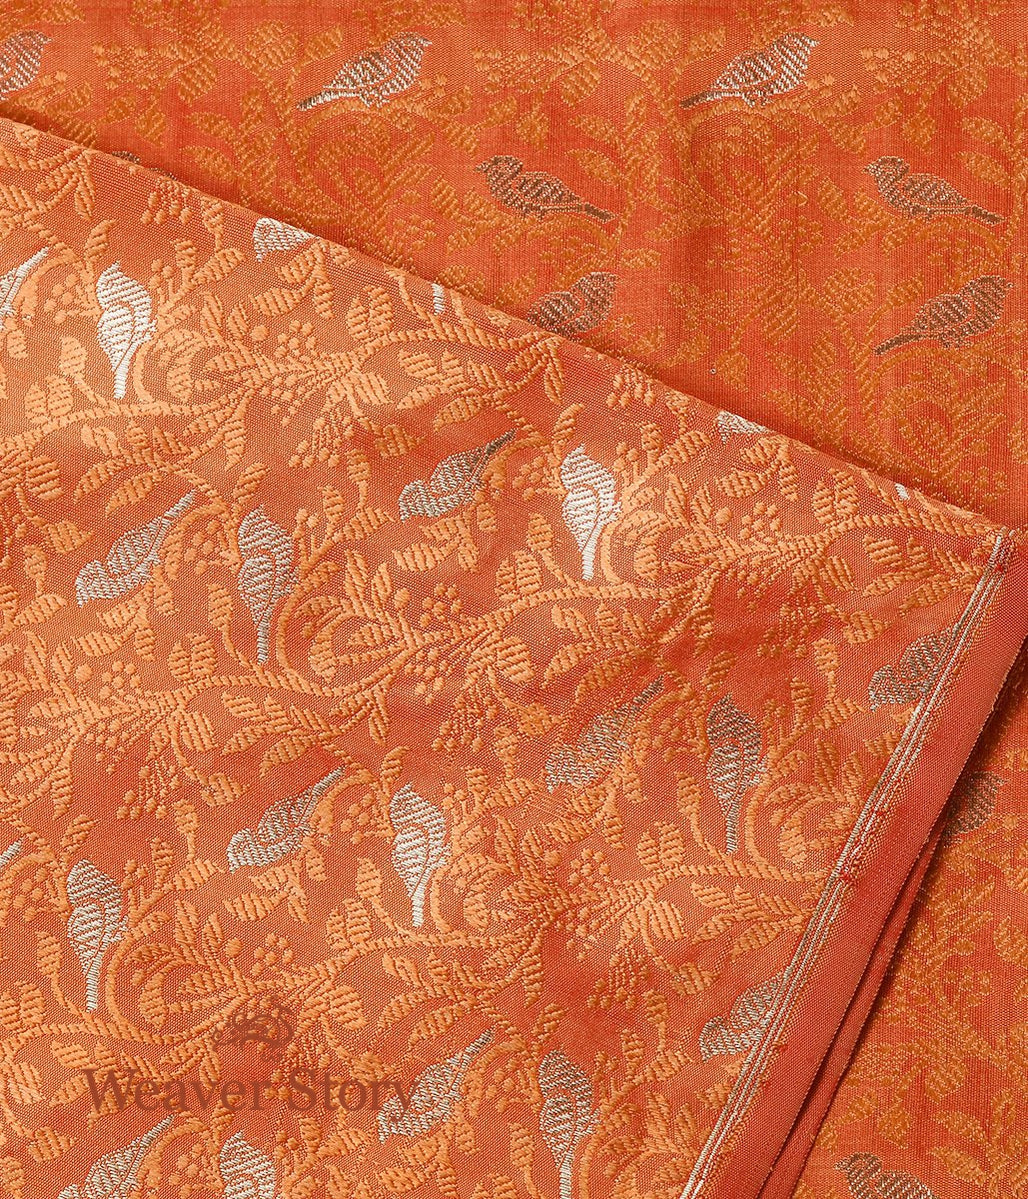 Handwoven Orange Bird Motif Tanchoi Fabric